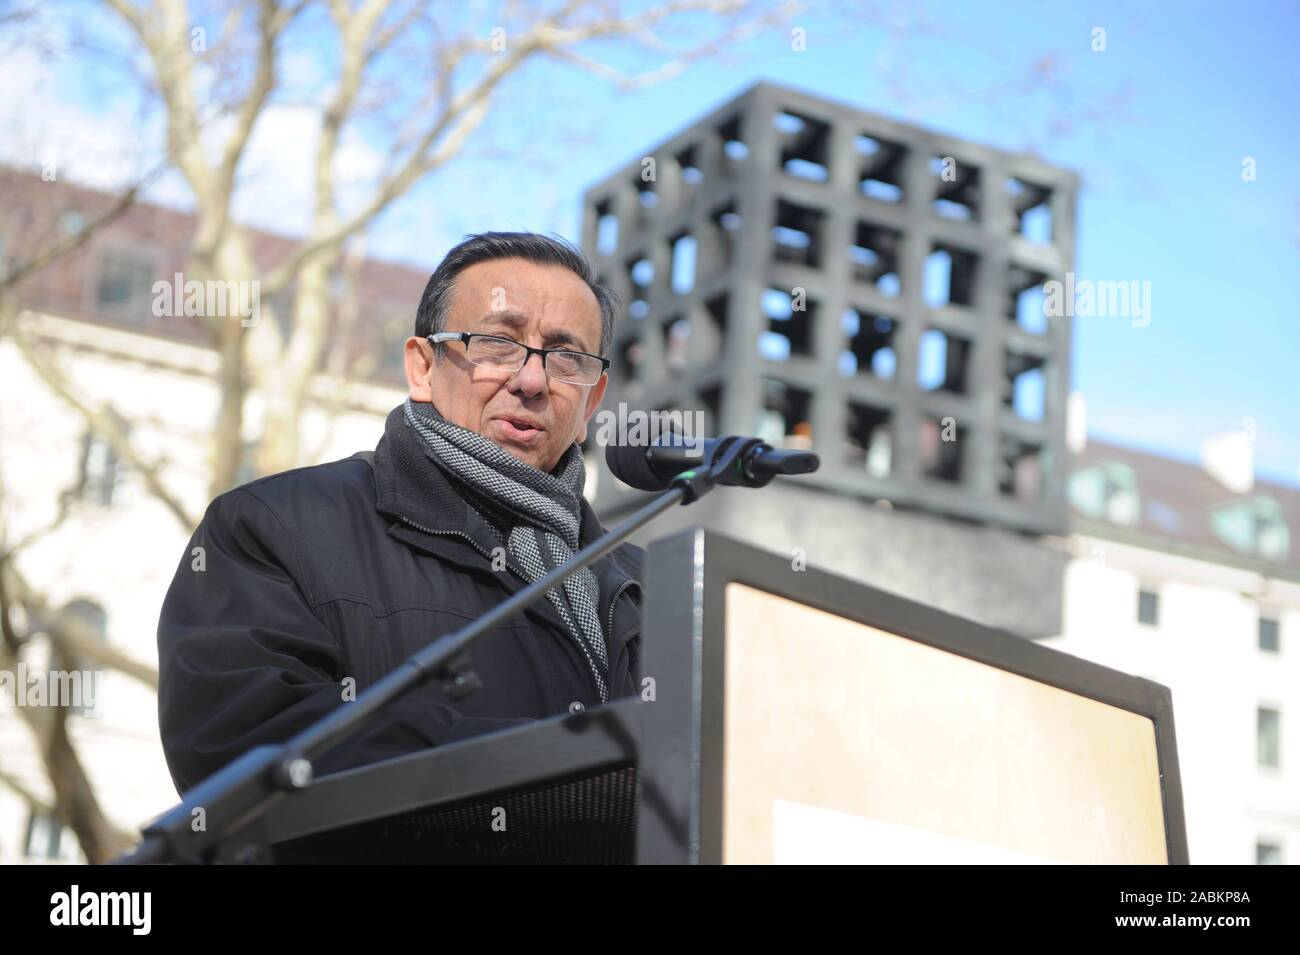 Erich Schneeberger, state chairman of the Association of German Sinti and Roma, speaks at a ceremony commemorating the 141 Sinti and Roma from Munich and the surrounding area who were deported by the Nazis on the Square of Victims of National Socialism. [automated translation] Stock Photo